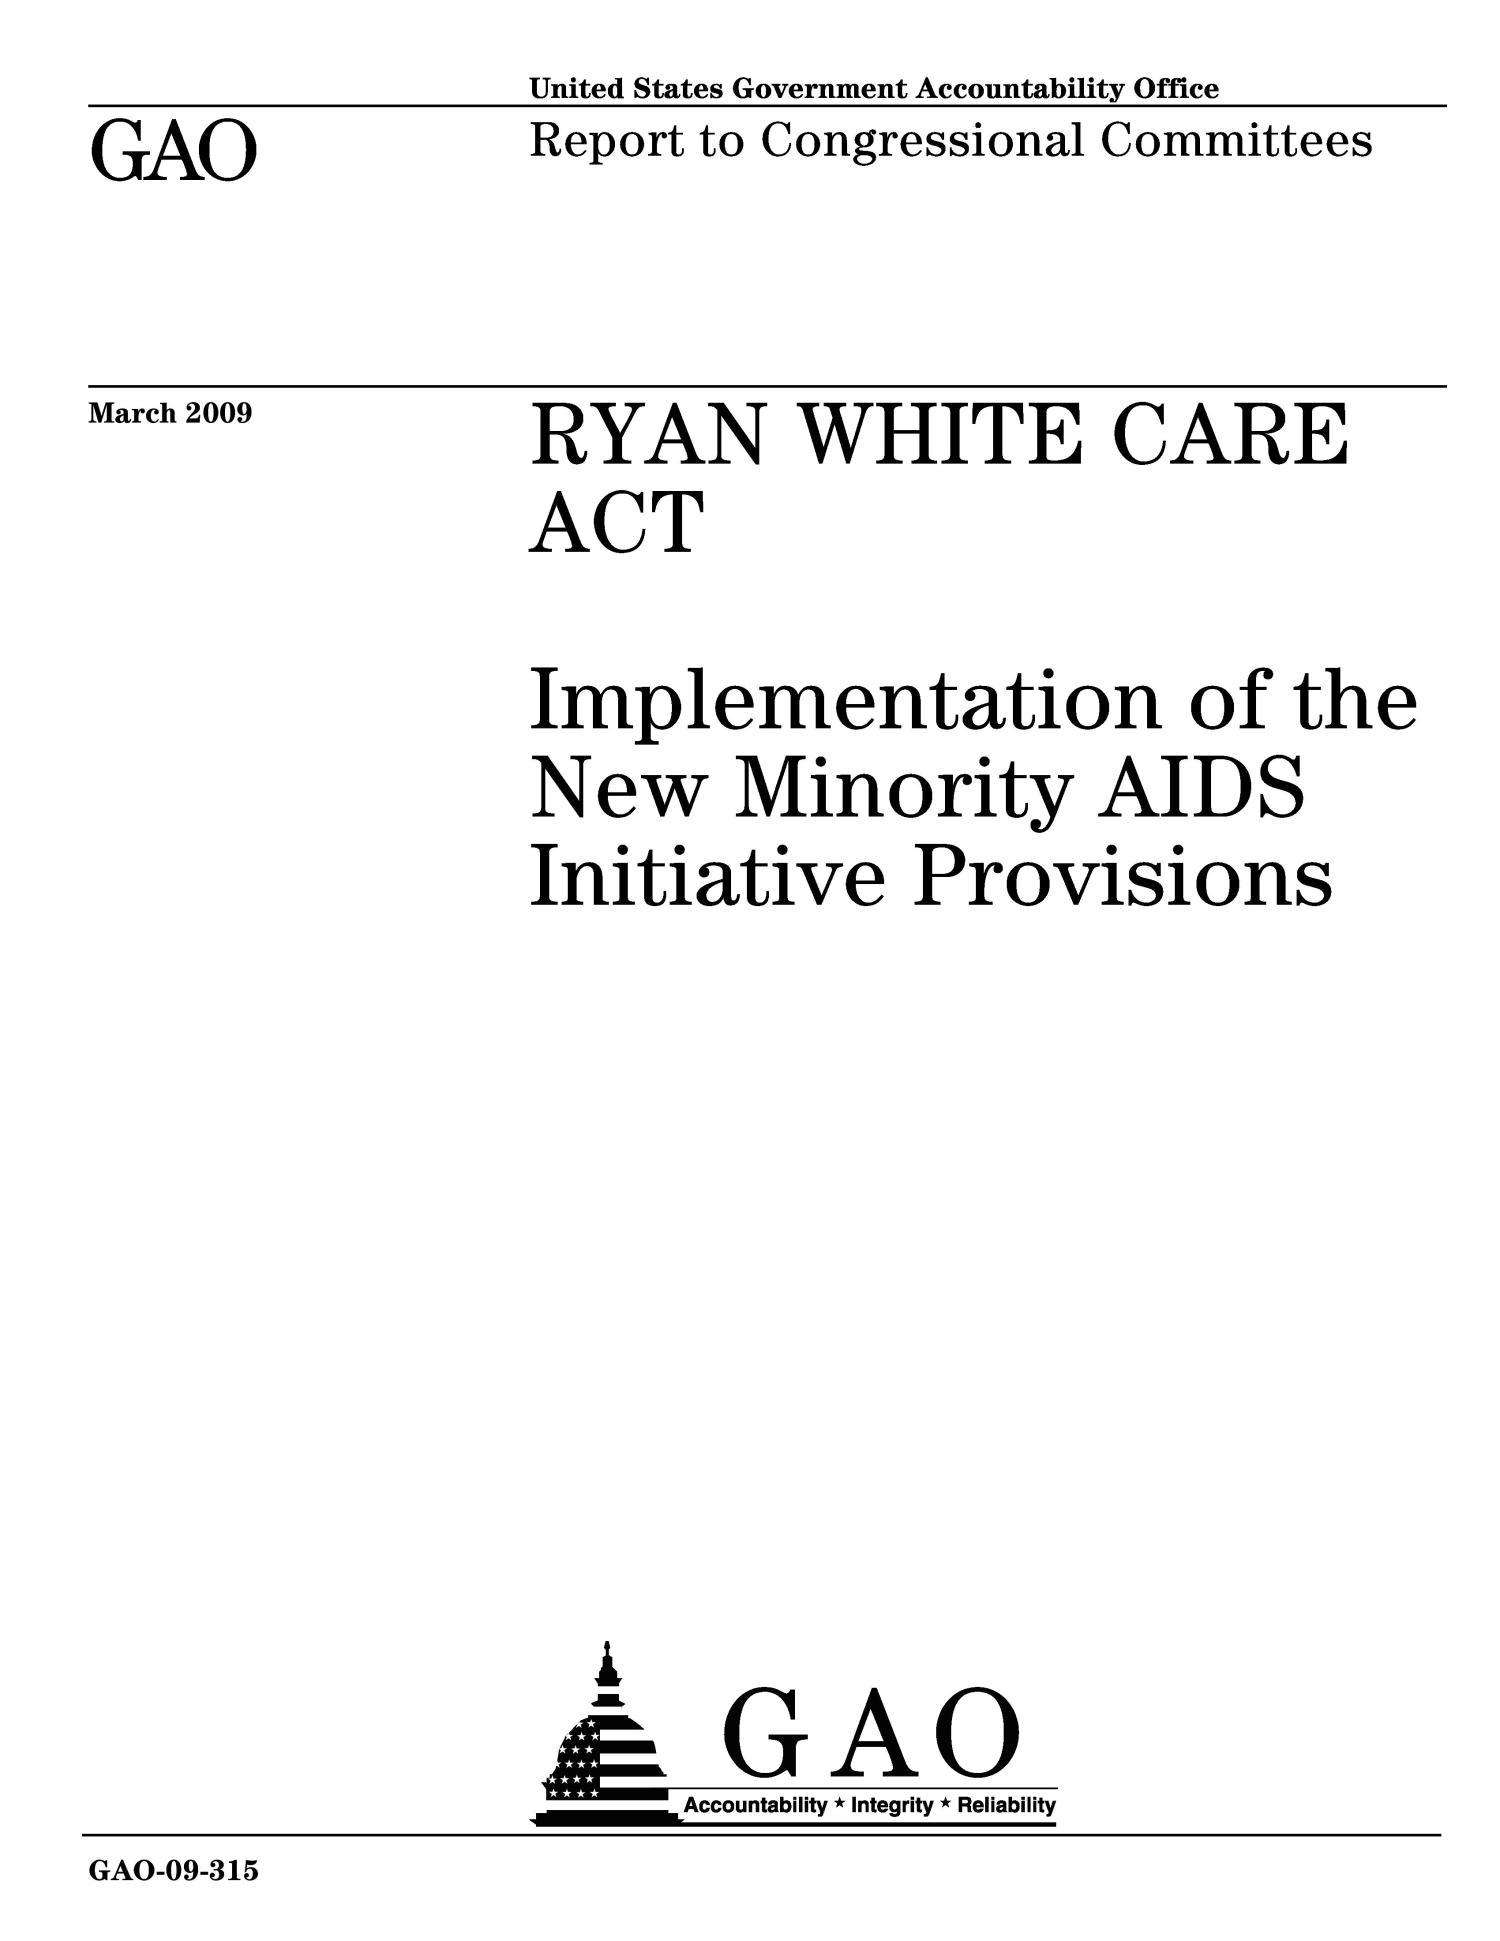 Ryan White CARE Act: Implementation of the New Minority AIDS Initiative Provisions                                                                                                      [Sequence #]: 1 of 57